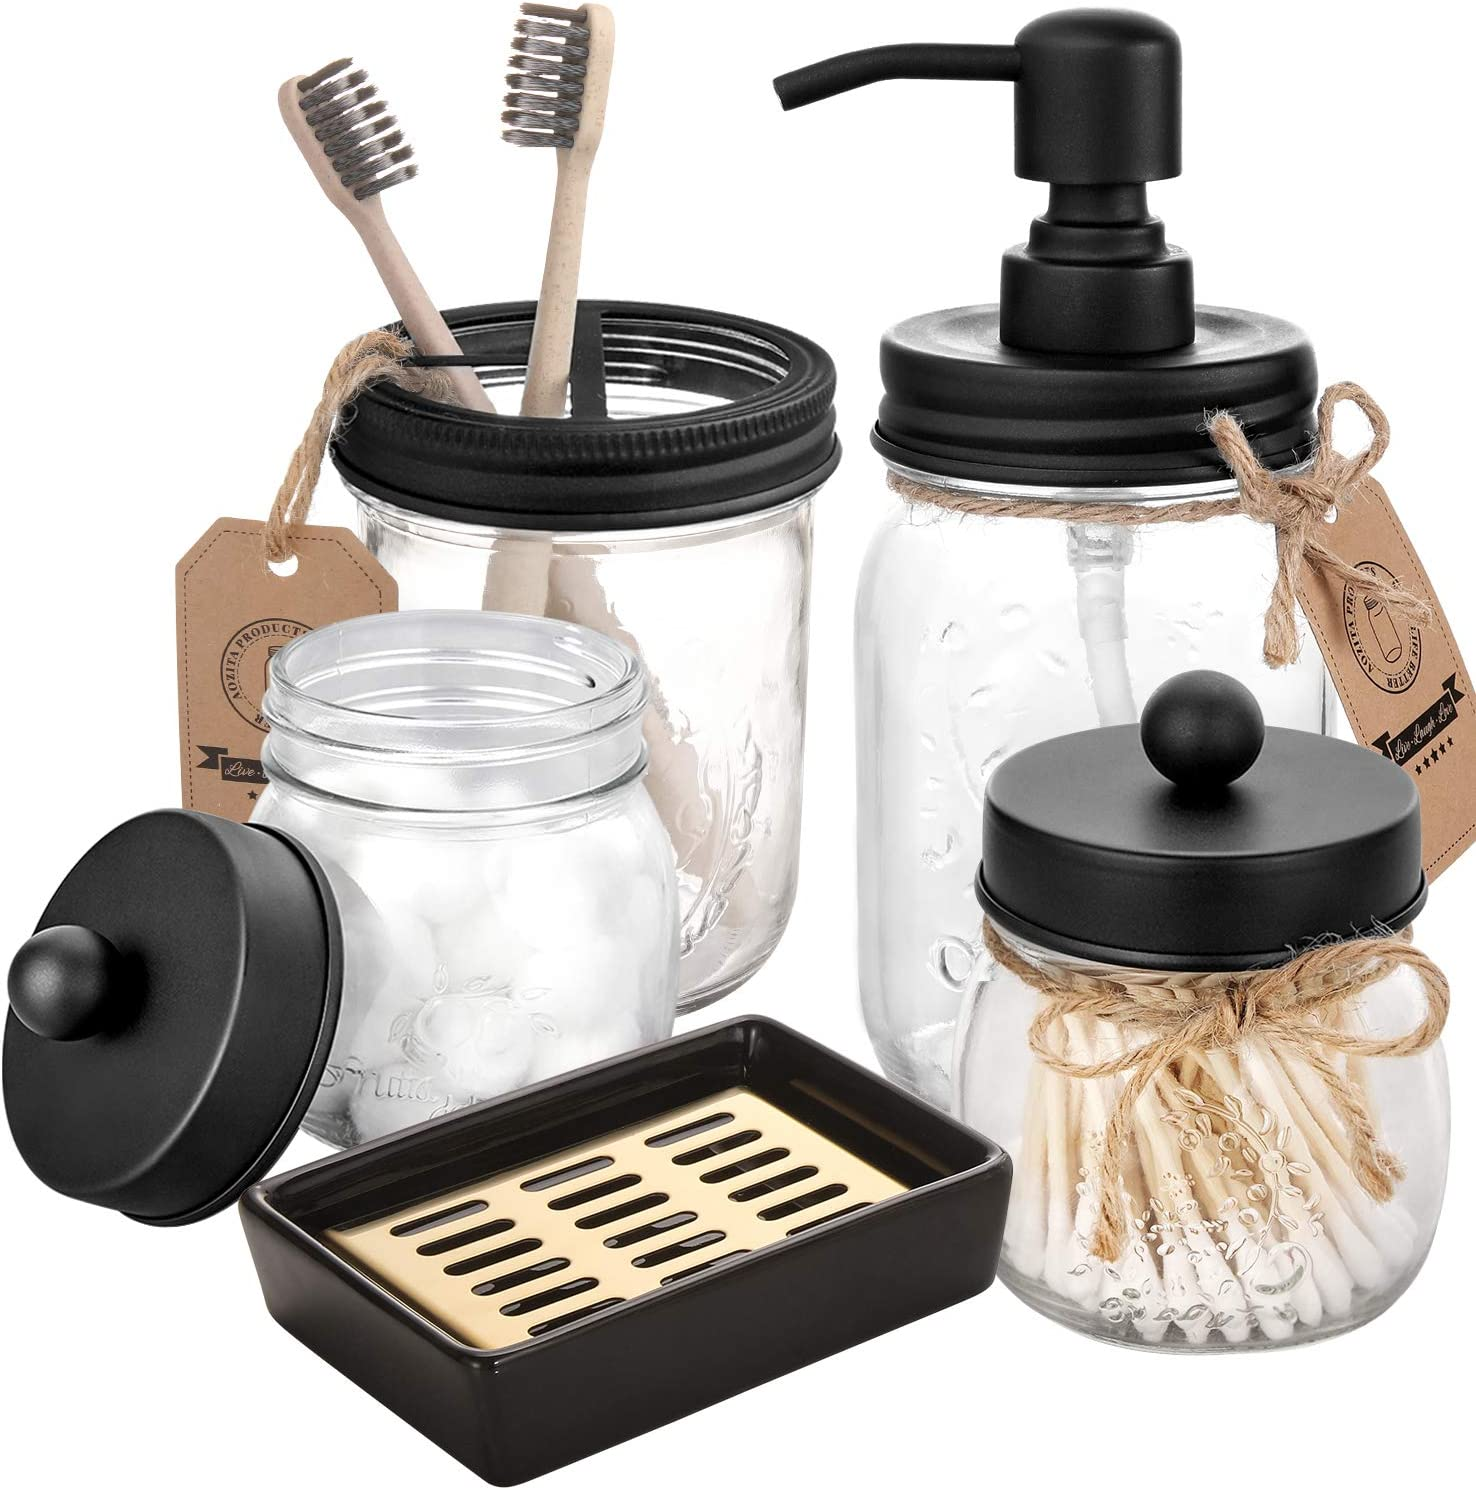 Mason Jar Bathroom Accessories Set 5 Pcs - Mason Jar Soap Dispenser & 2 Apothecary Jars & Toothbrush Holder &Ceramic Drain Soap Dish - Rustic Farmhouse Decor, Bathroom Home Decor Clearance, Black